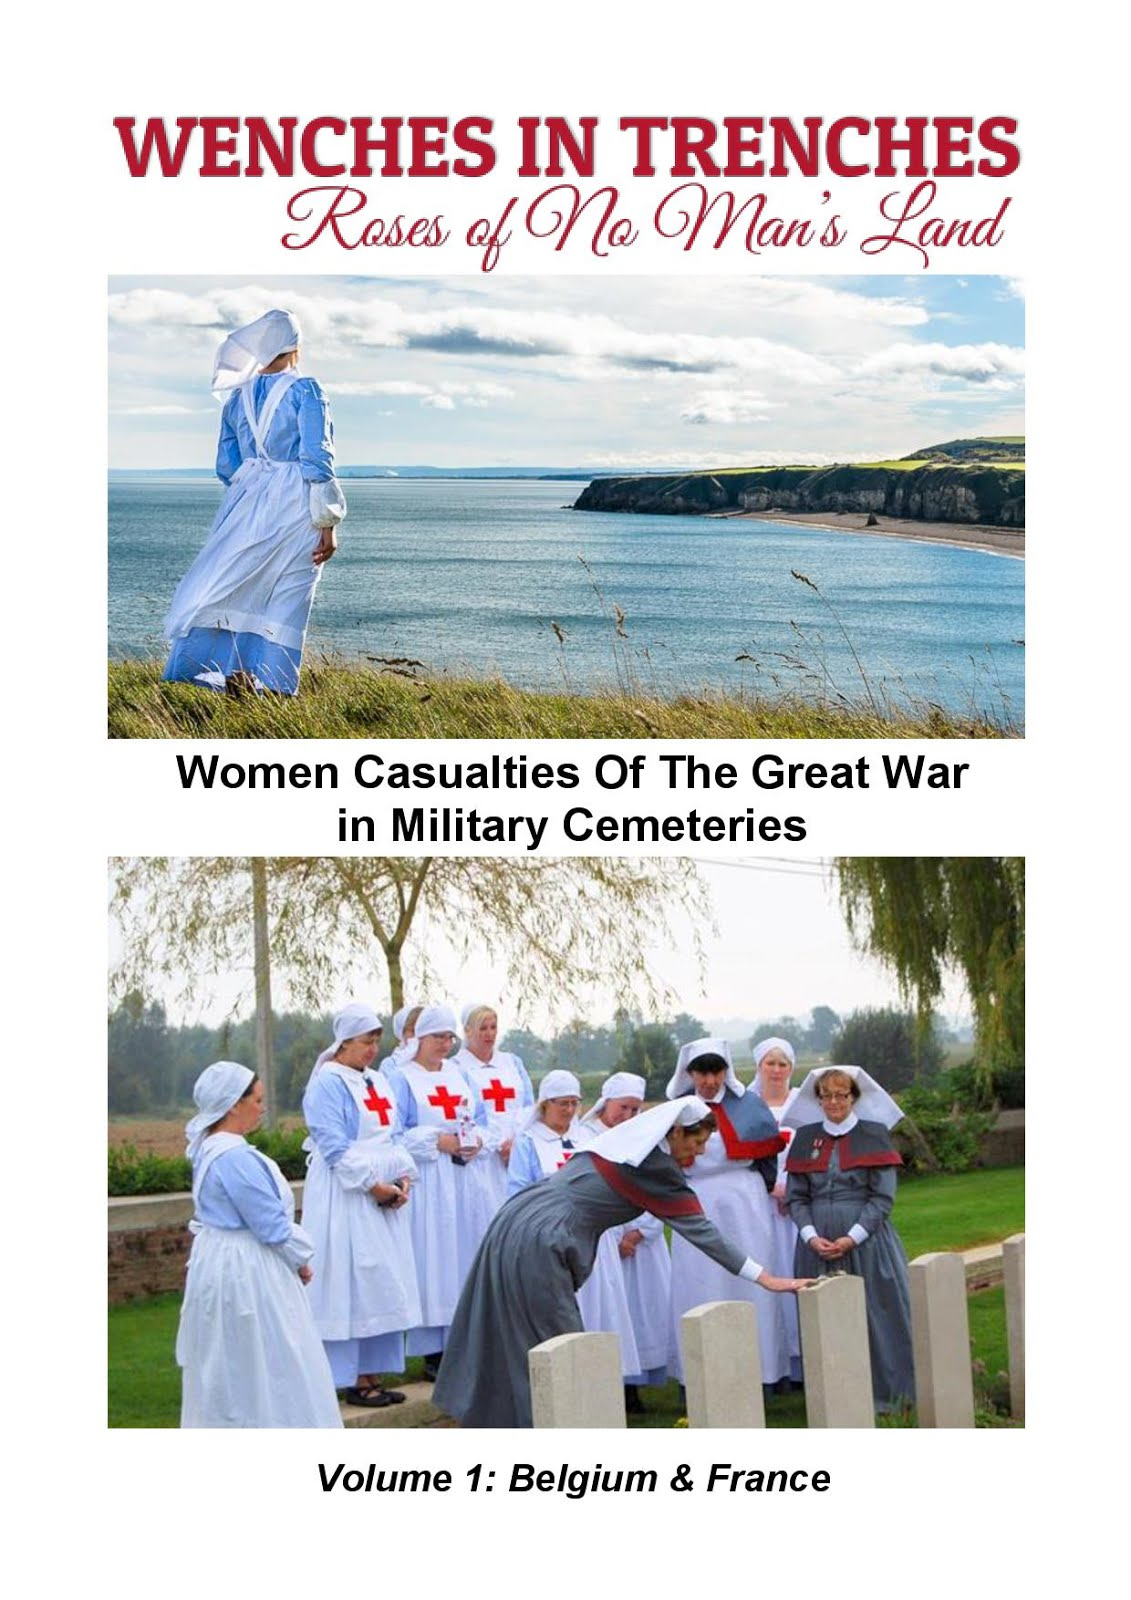 Women Casualties Of The Great War In Military Cemeteries